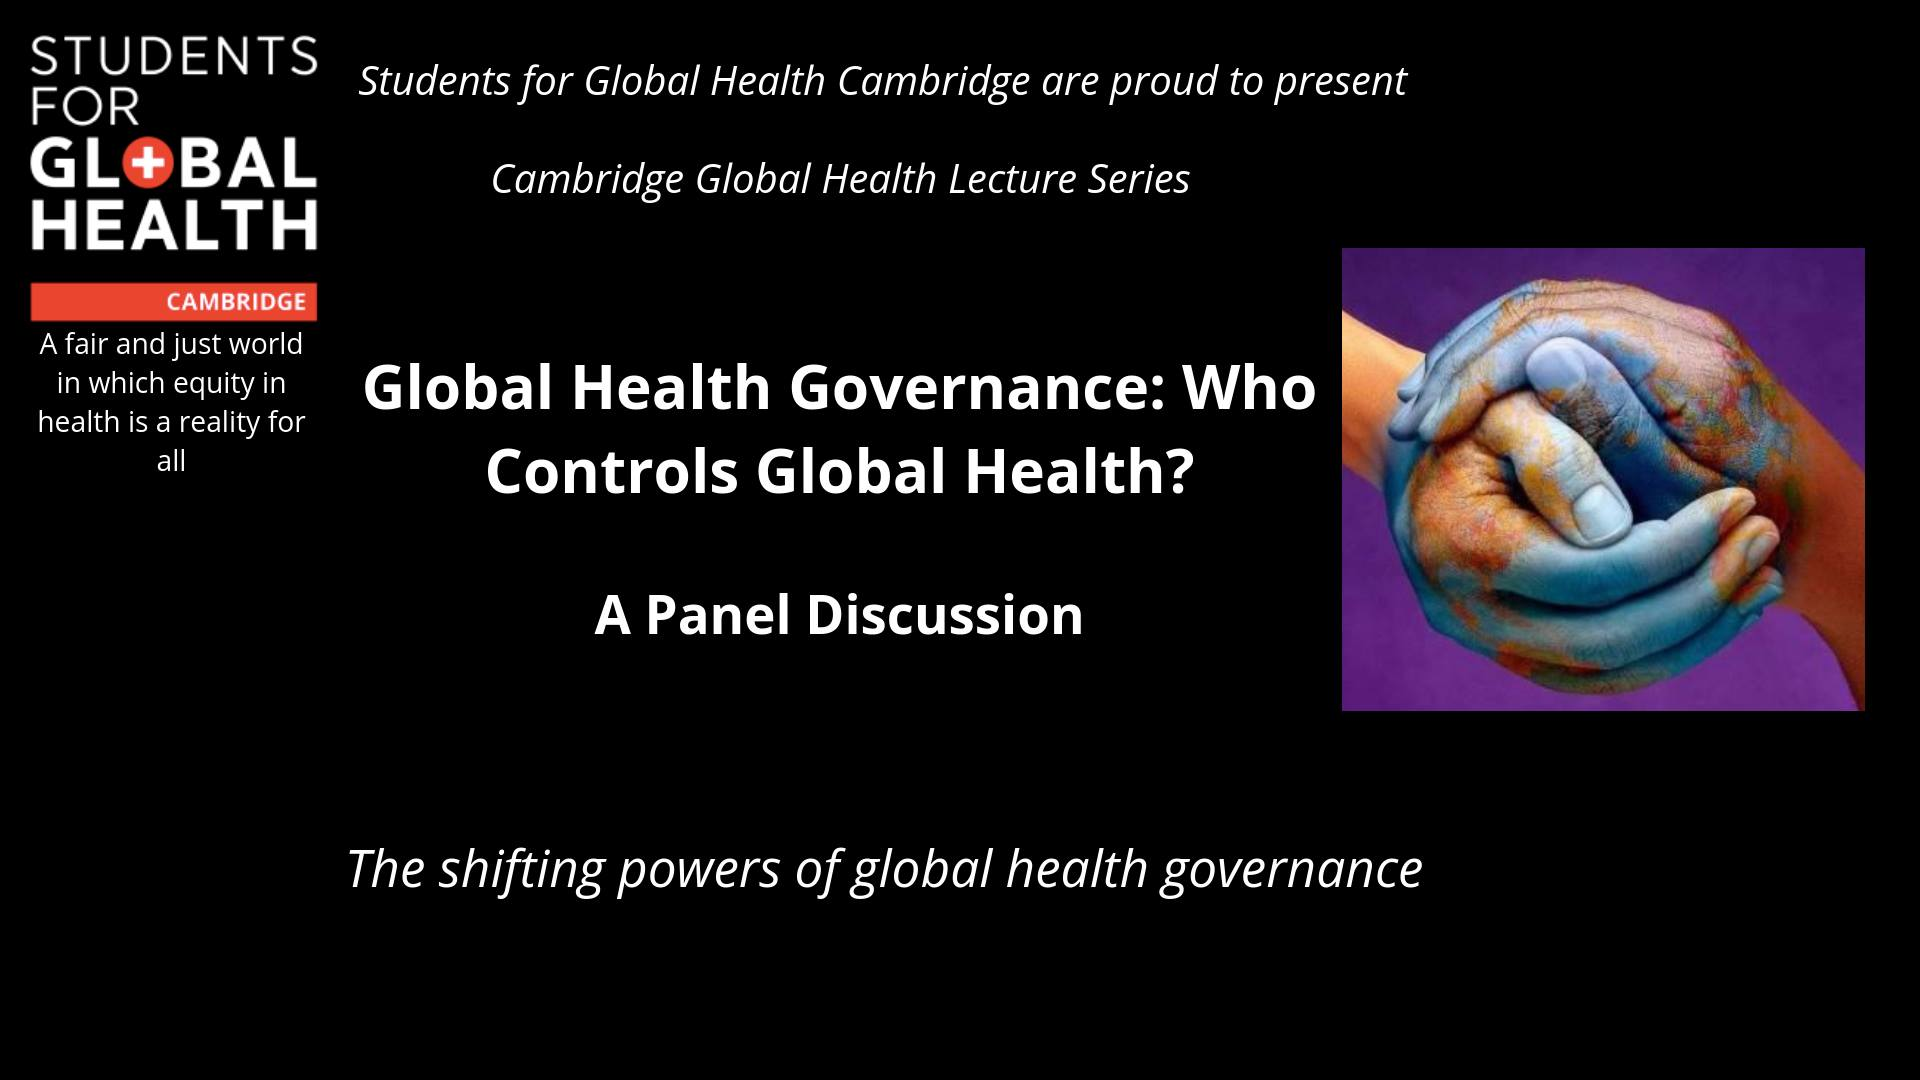 Global Health Governance, who governs global health?